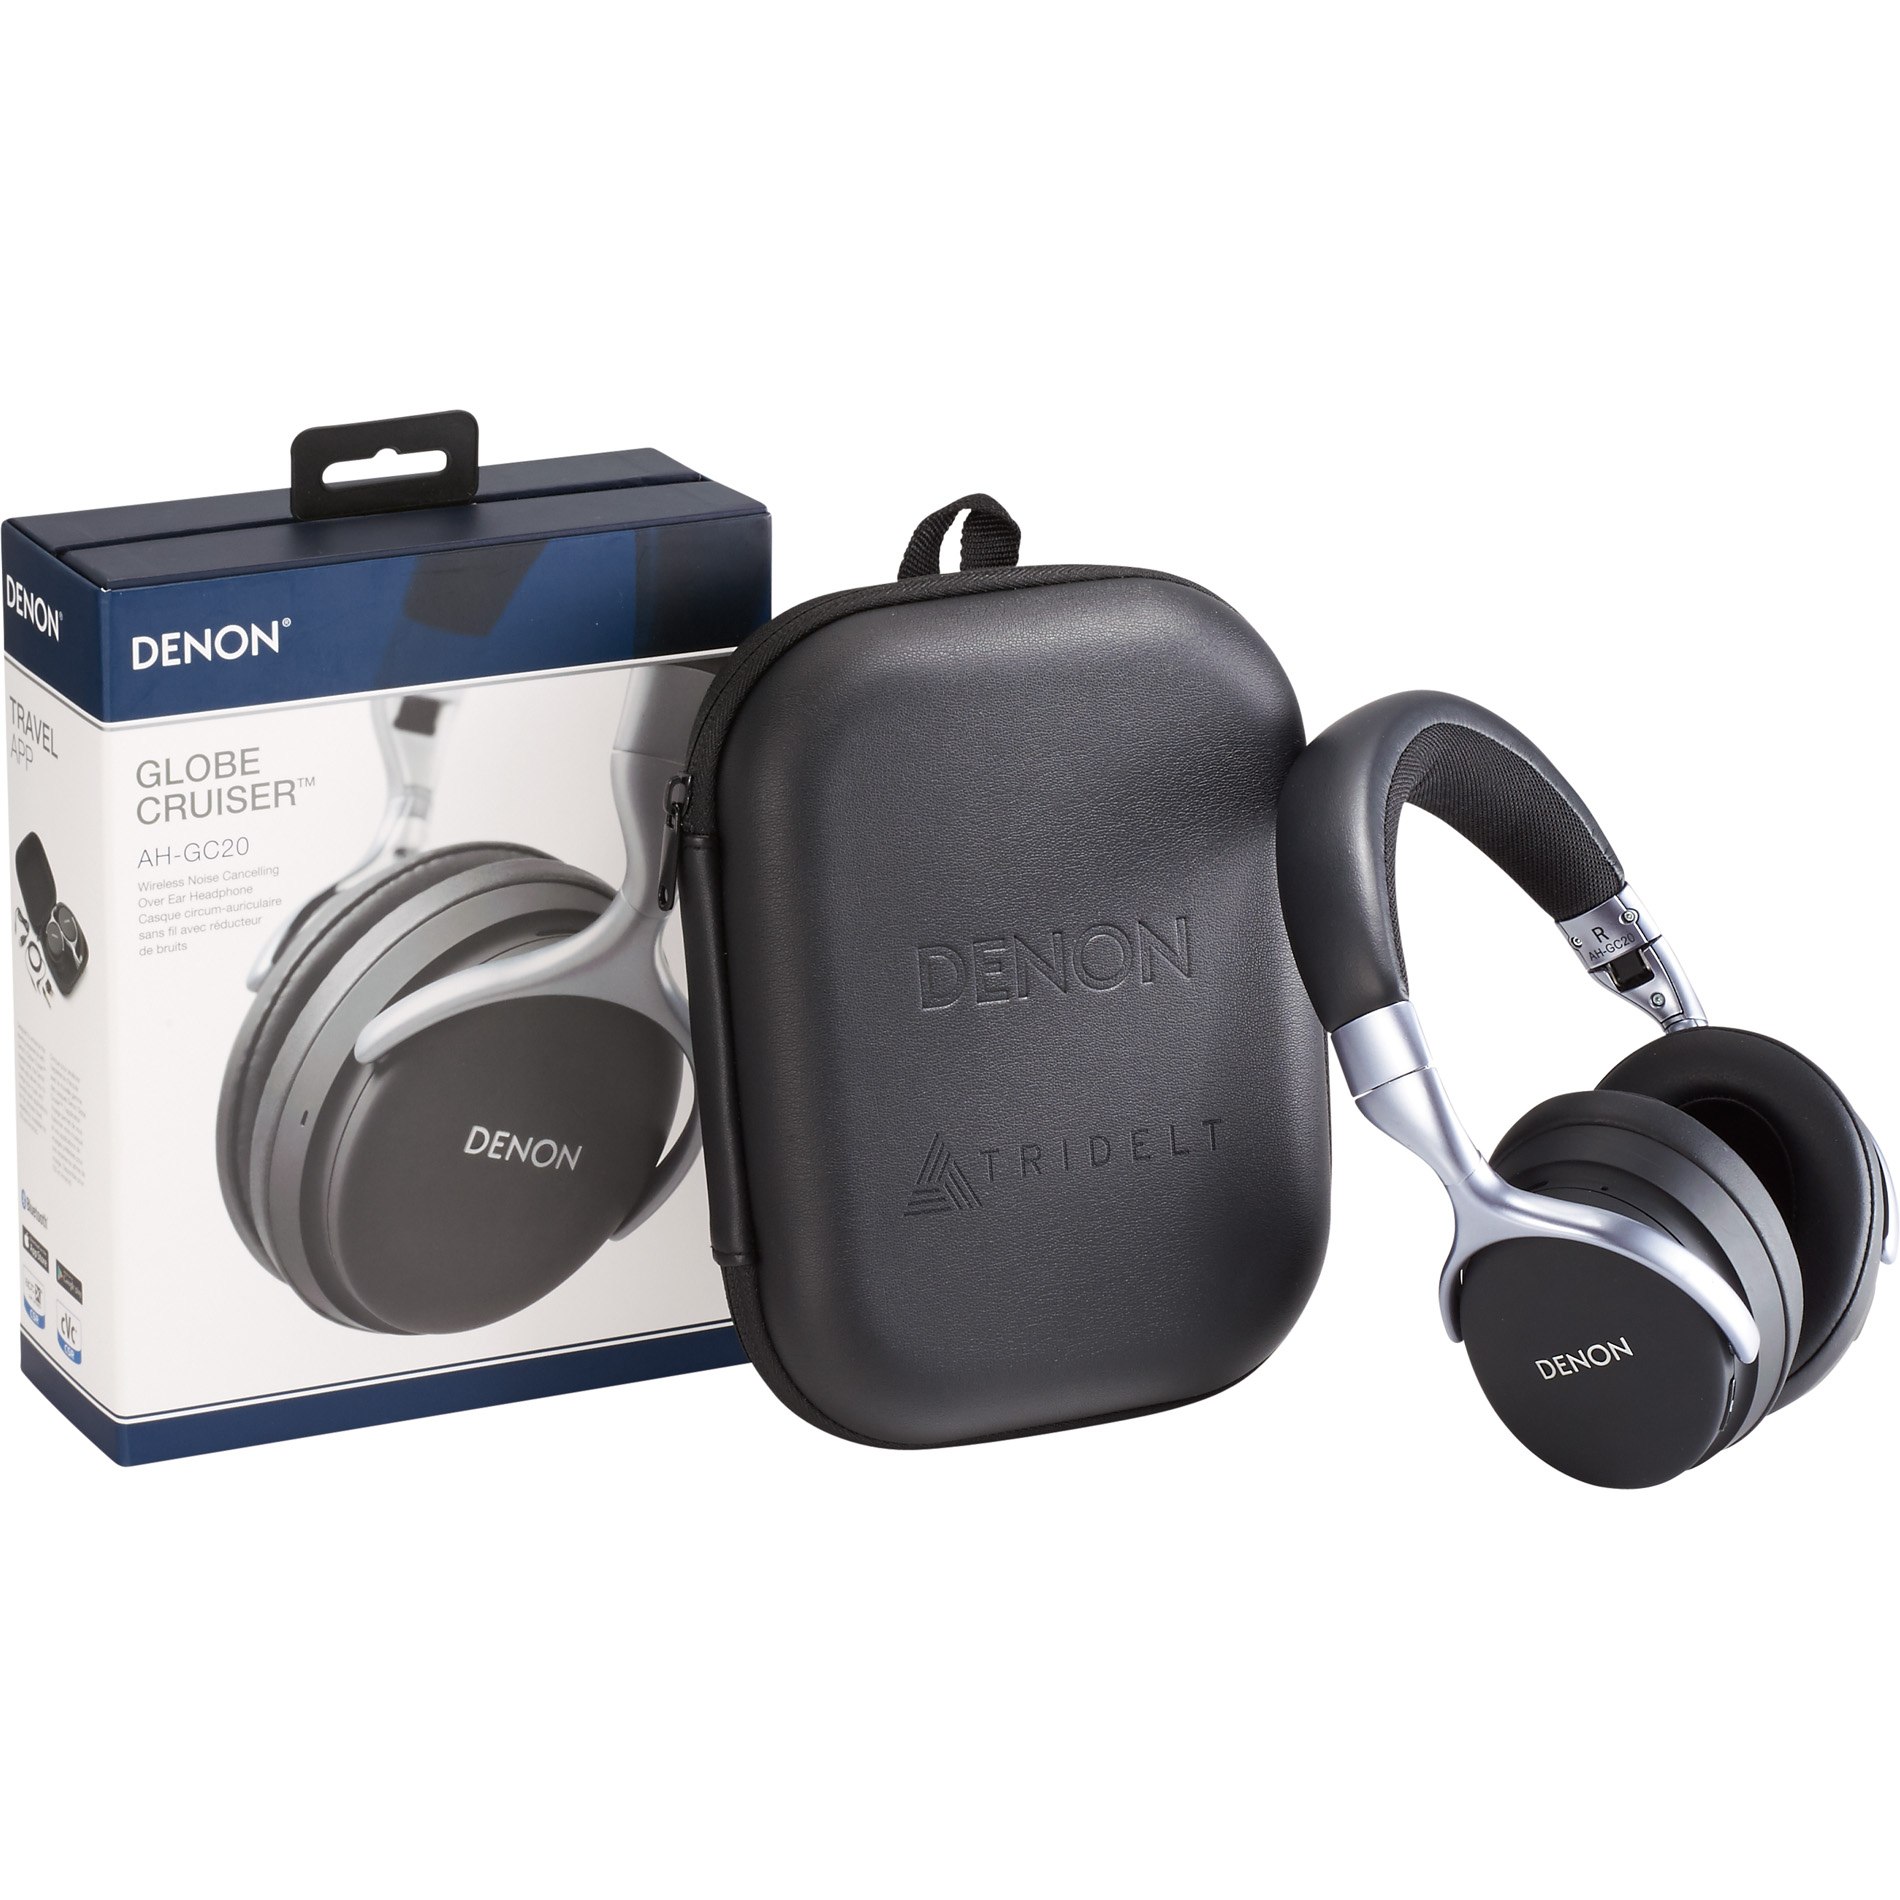 Denon Global Cruiser Bluetooth Headphones w/ ANC